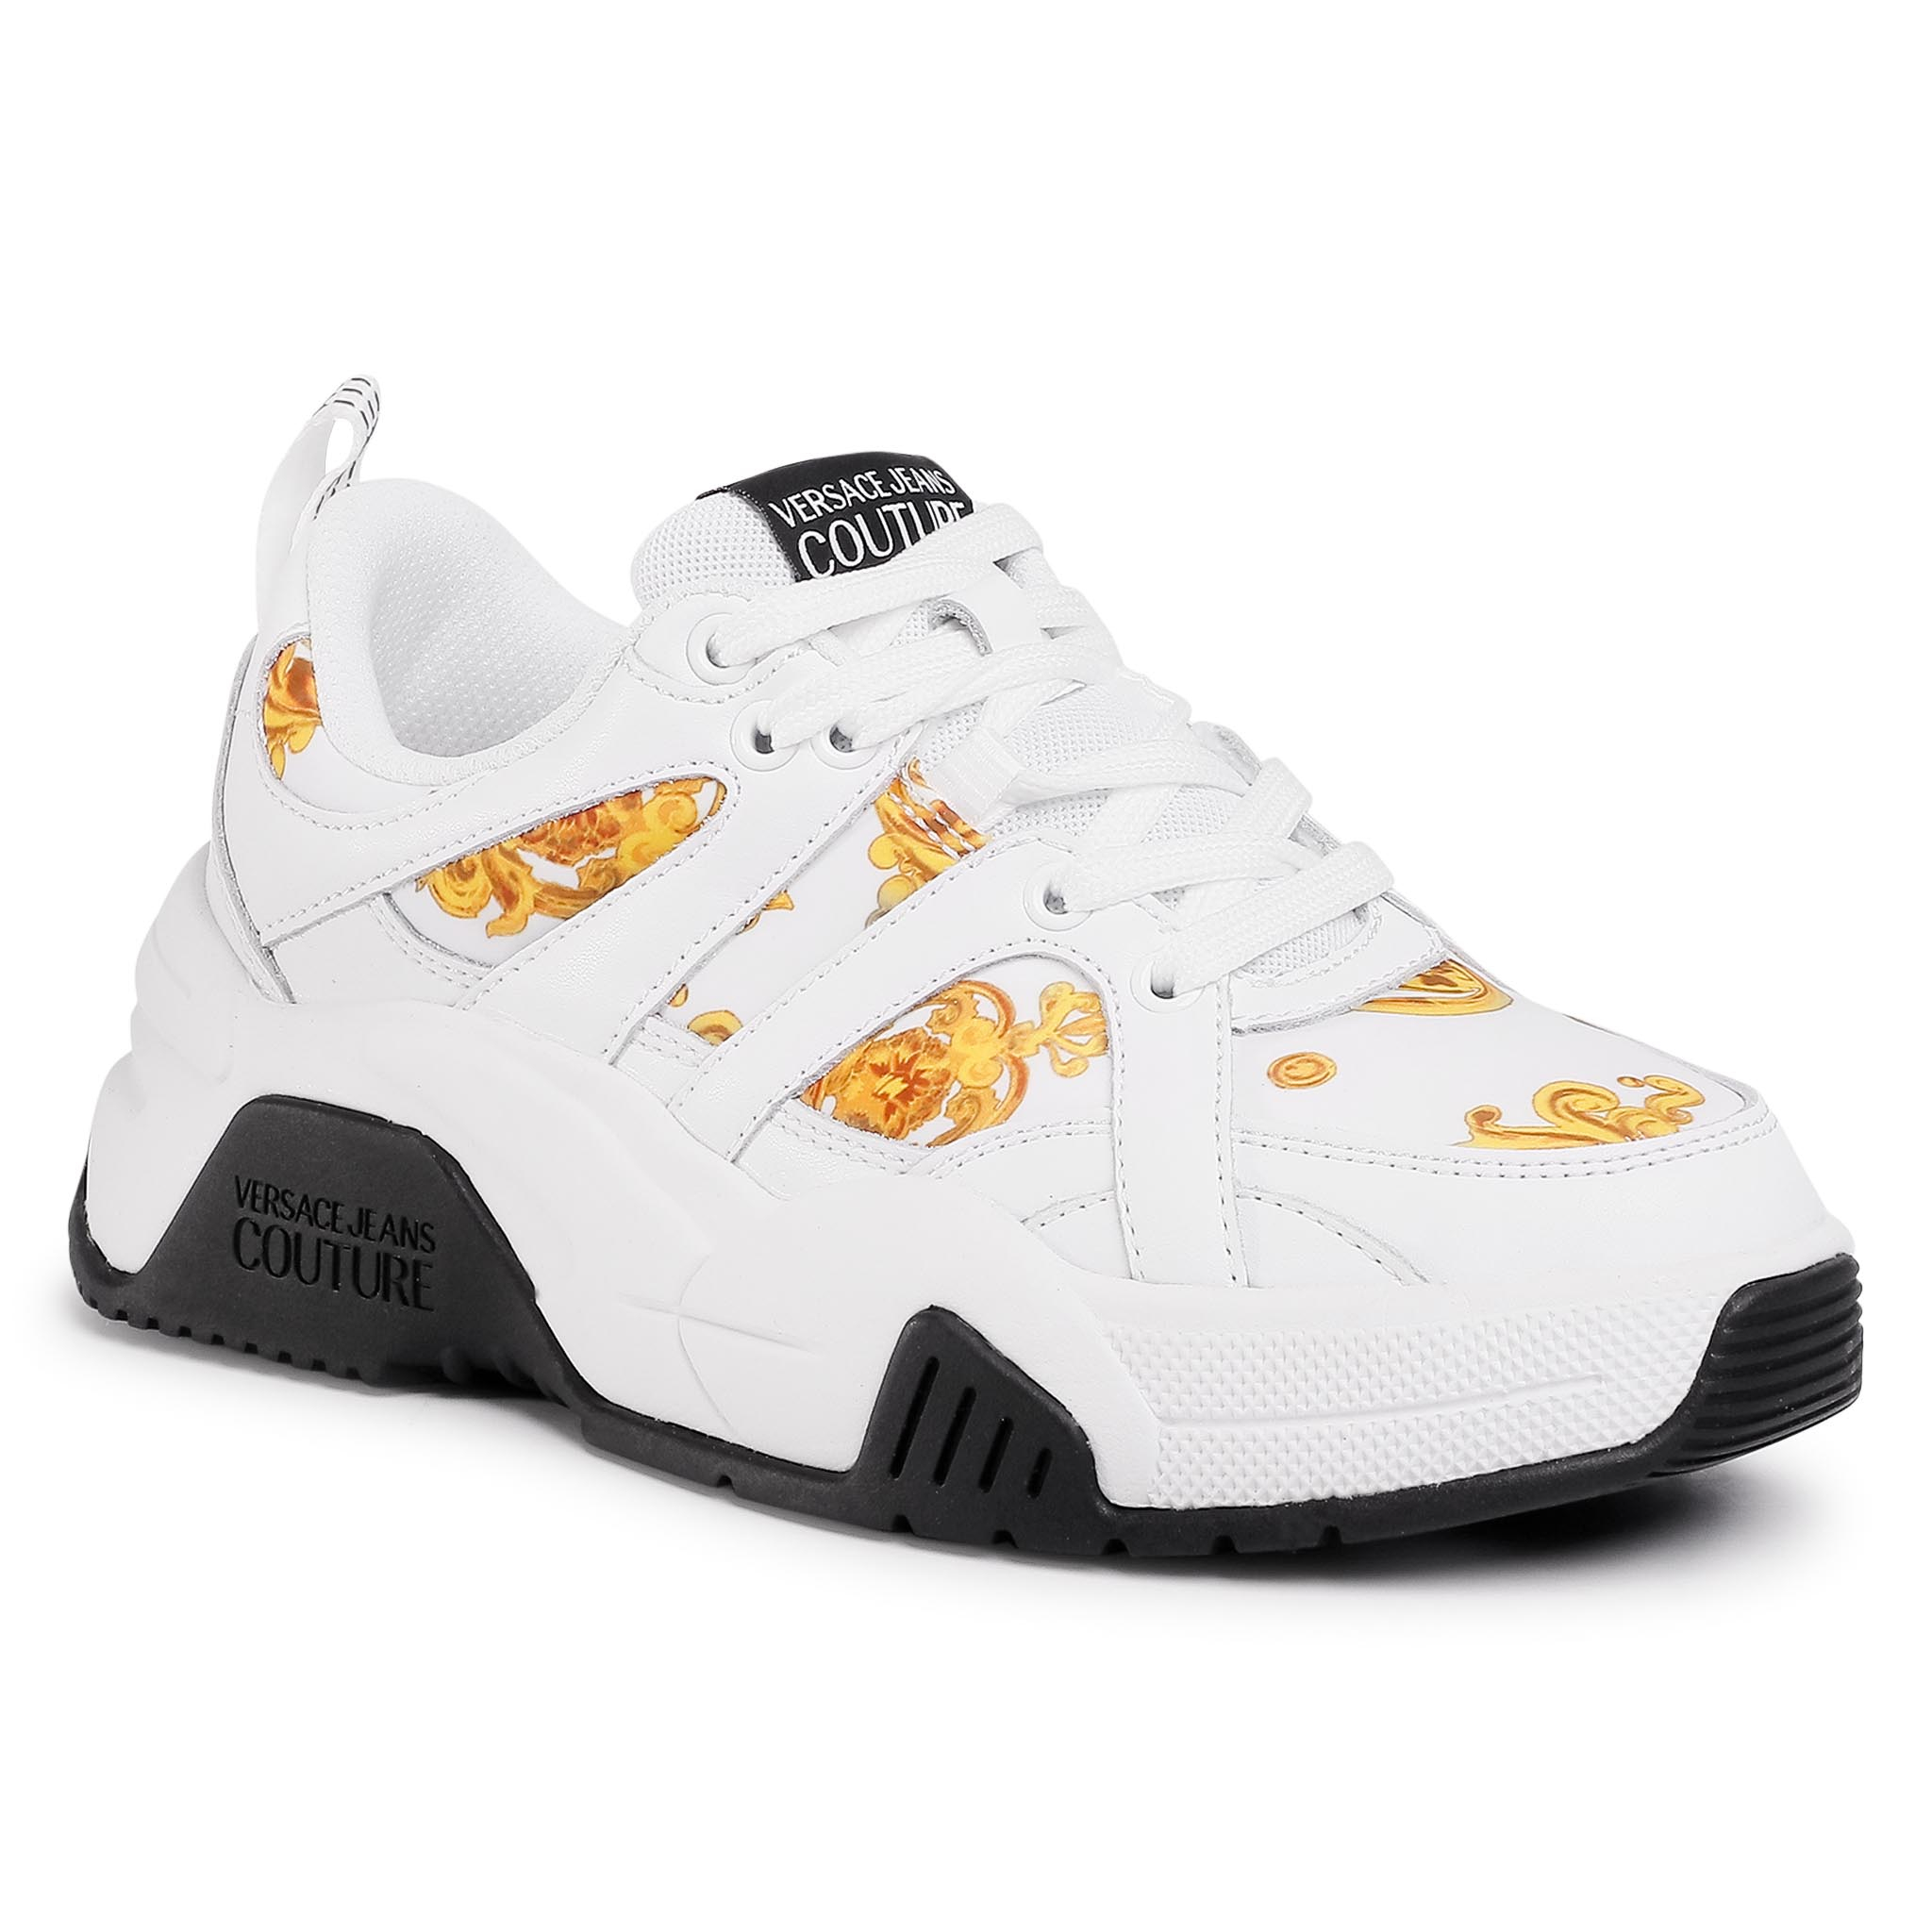 Sneakers VERSACE JEANS COUTURE - E0VVBSF5 71520 MCI